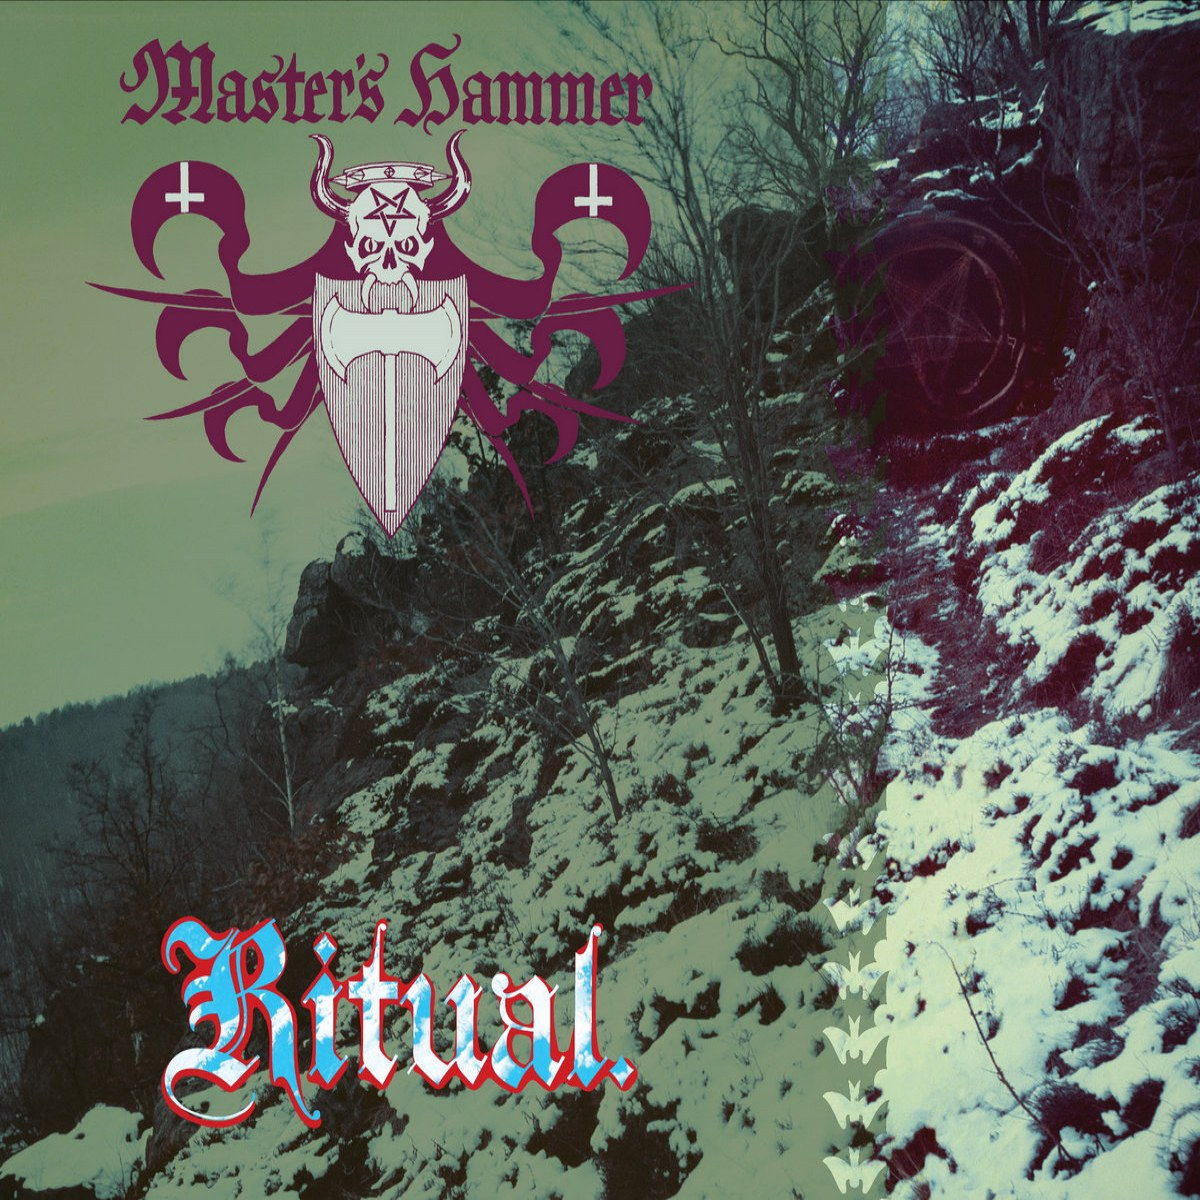 Best 1991 Black Metal album: 'Master's Hammer - Ritual'